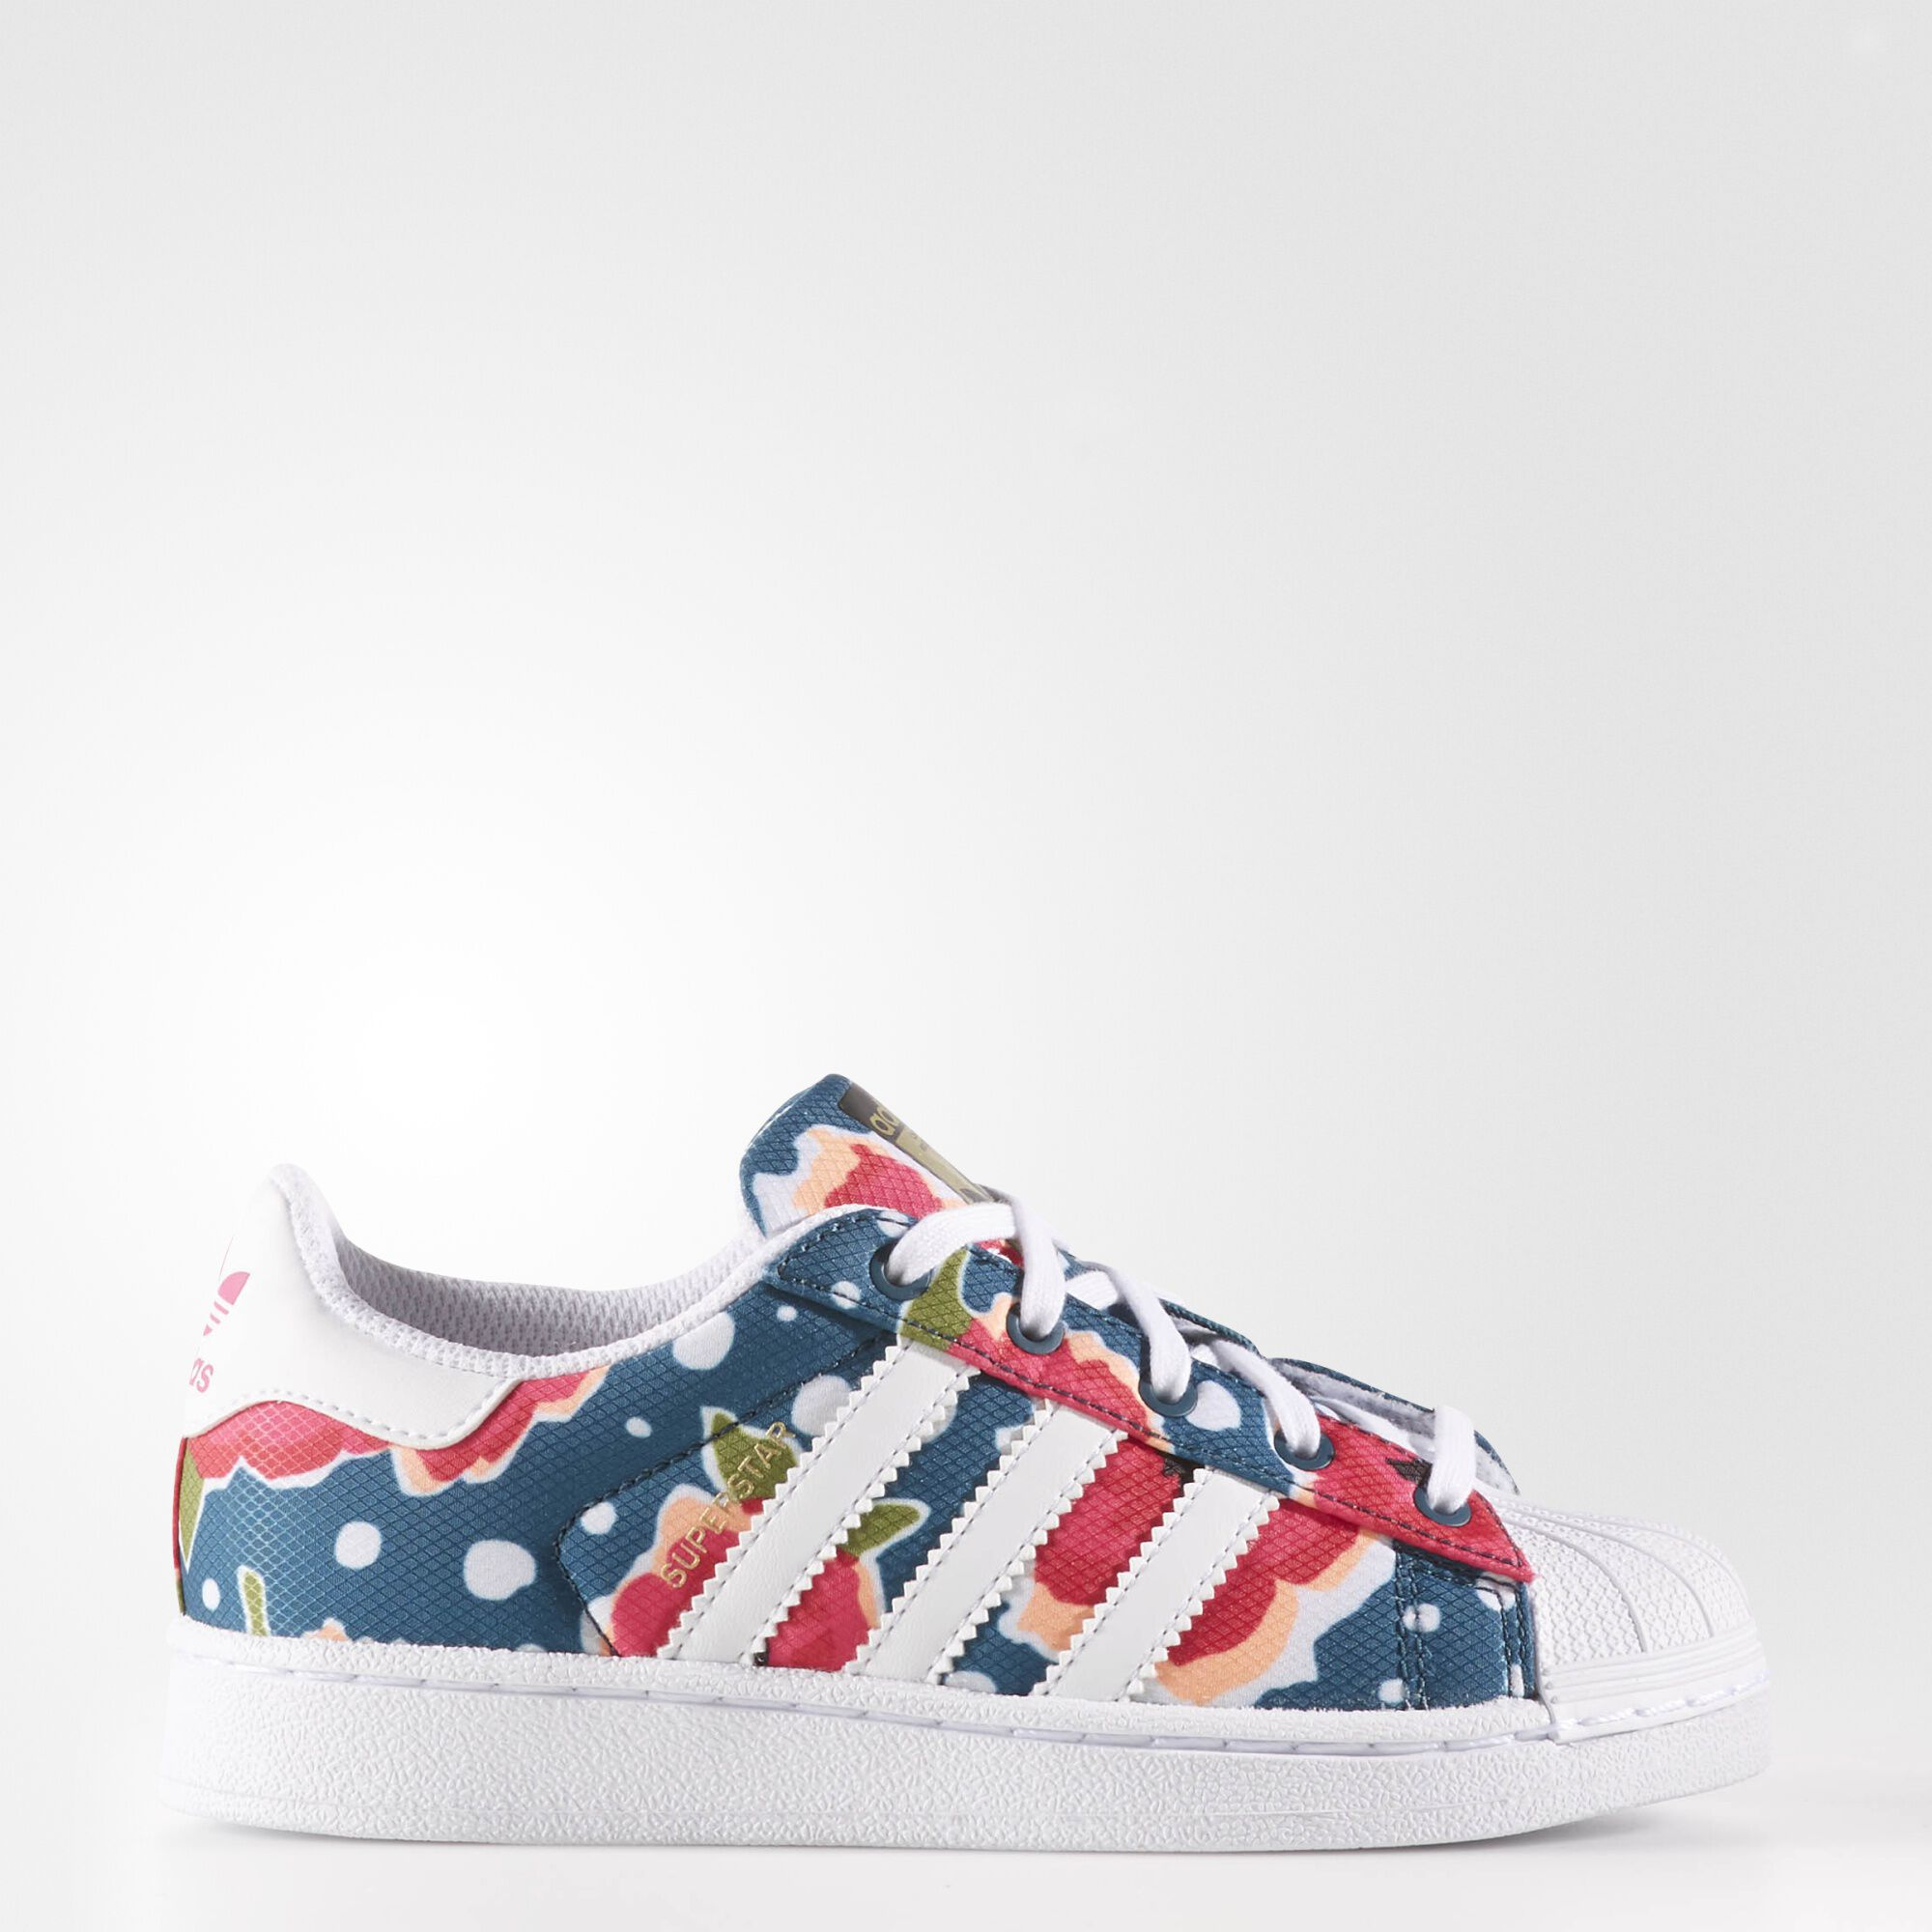 Adidas All Star Flores